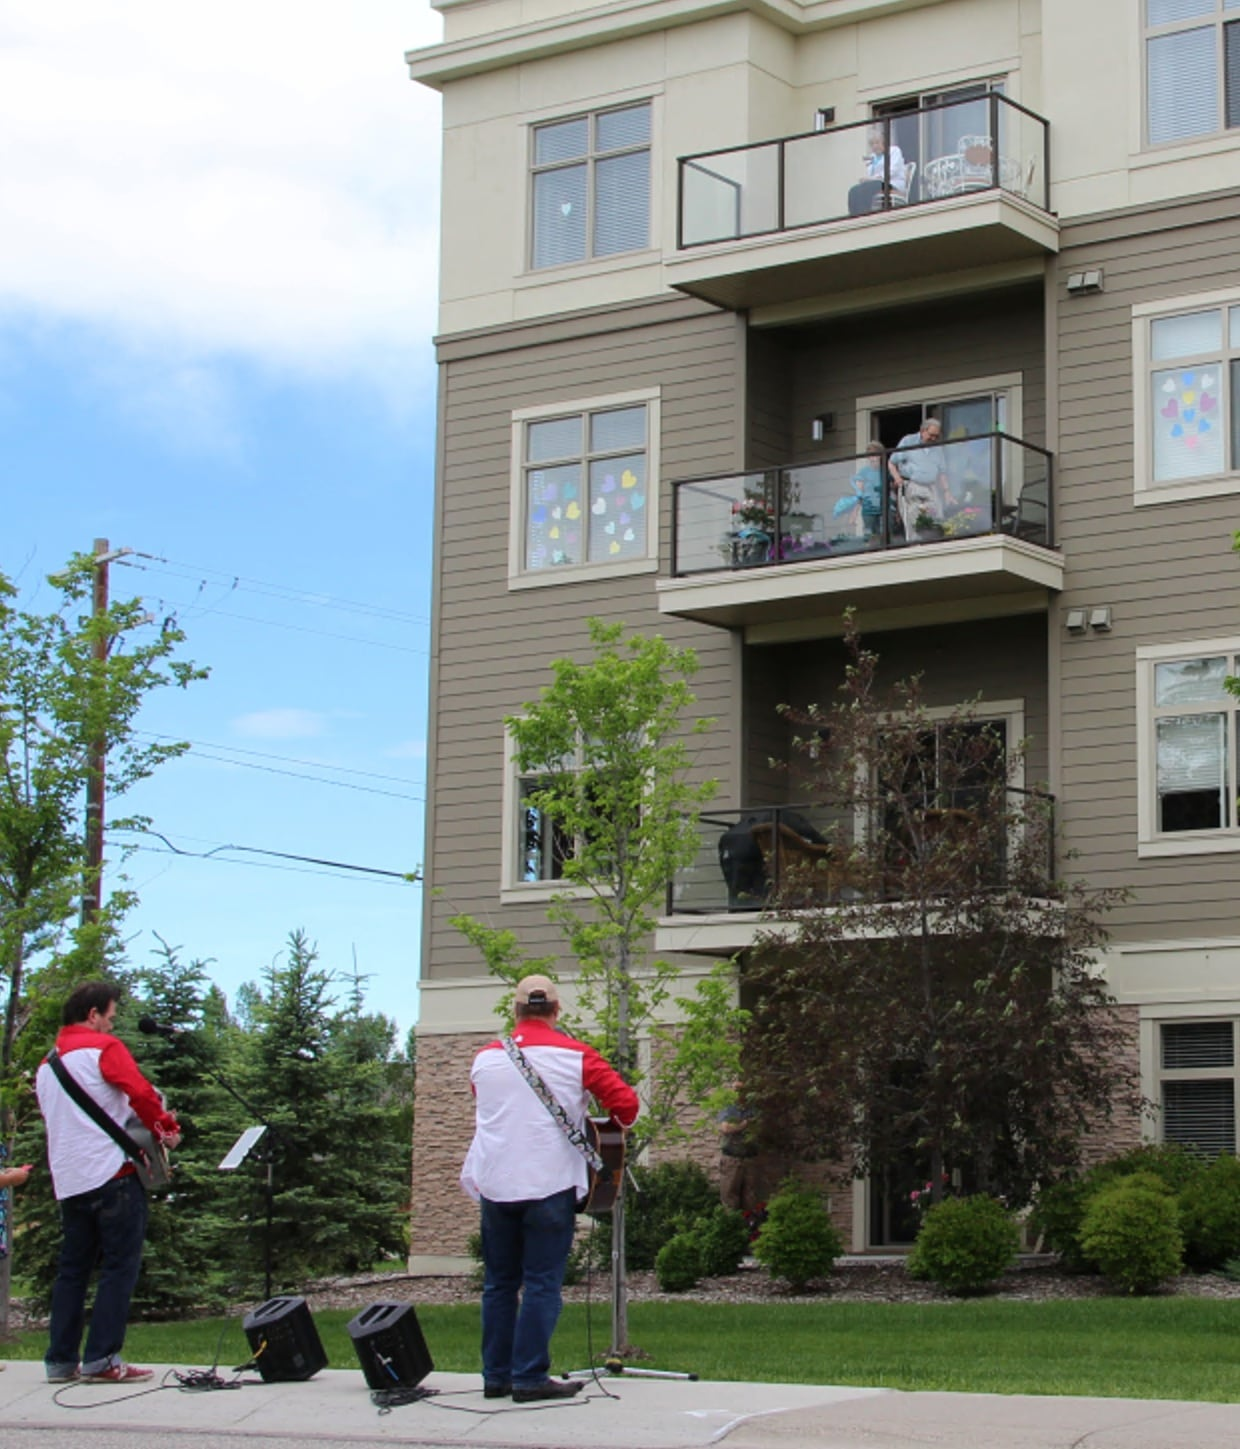 The Awesome Brothers serenaded residents on their balconies